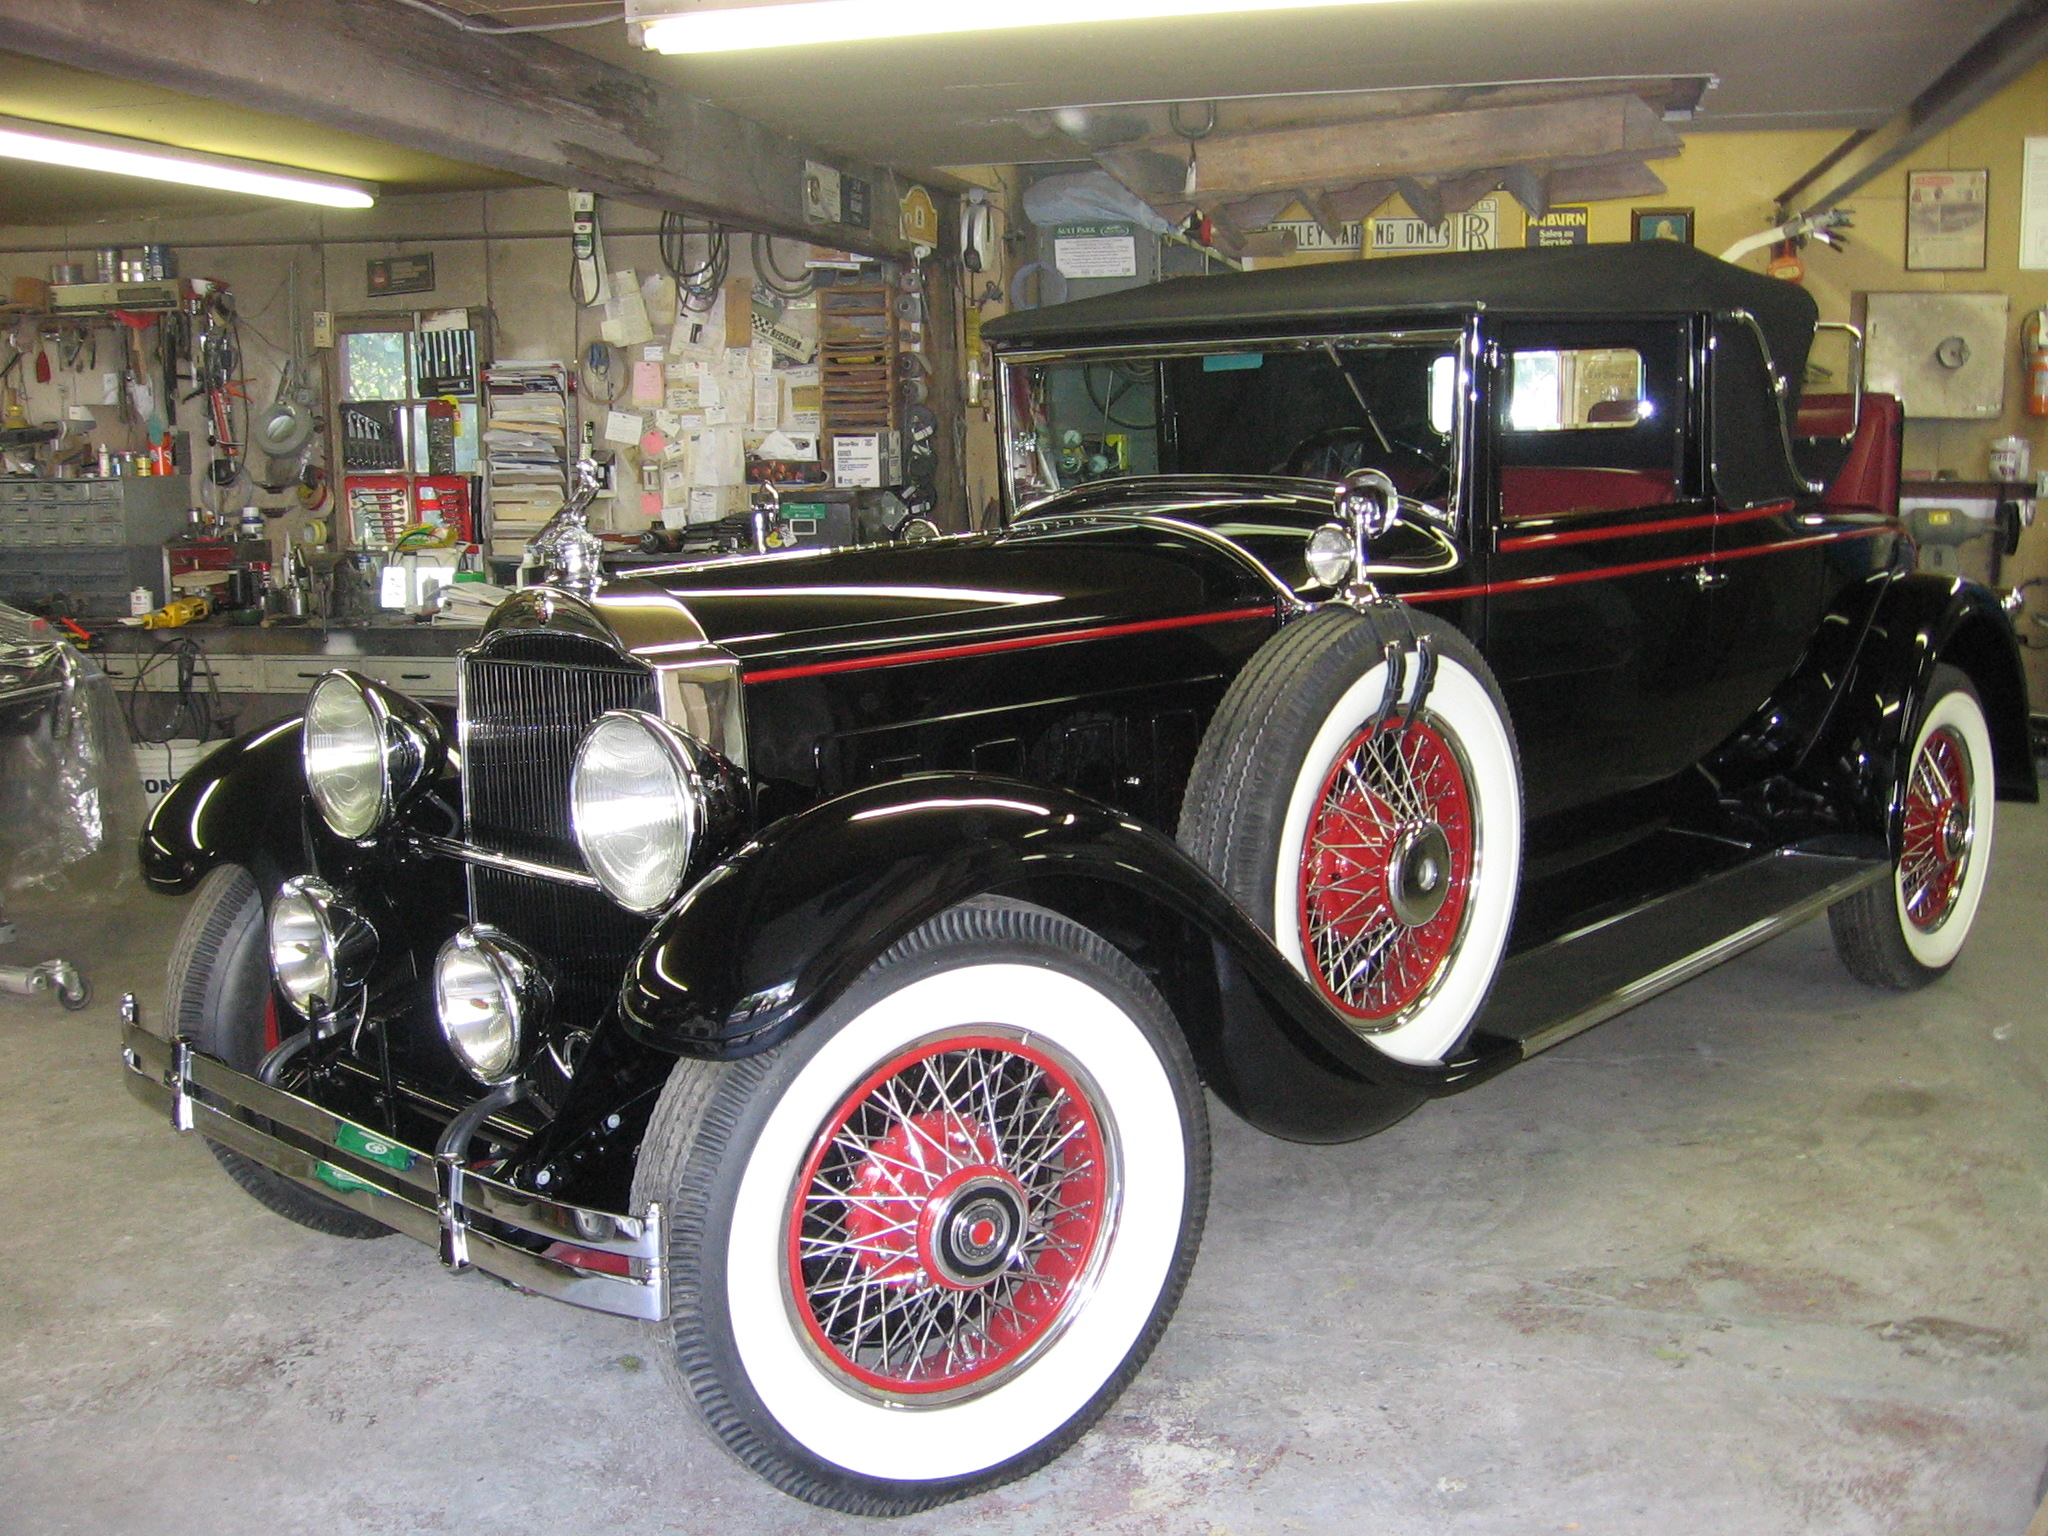 The Packard from Hershey : How sweet it is thumbnail